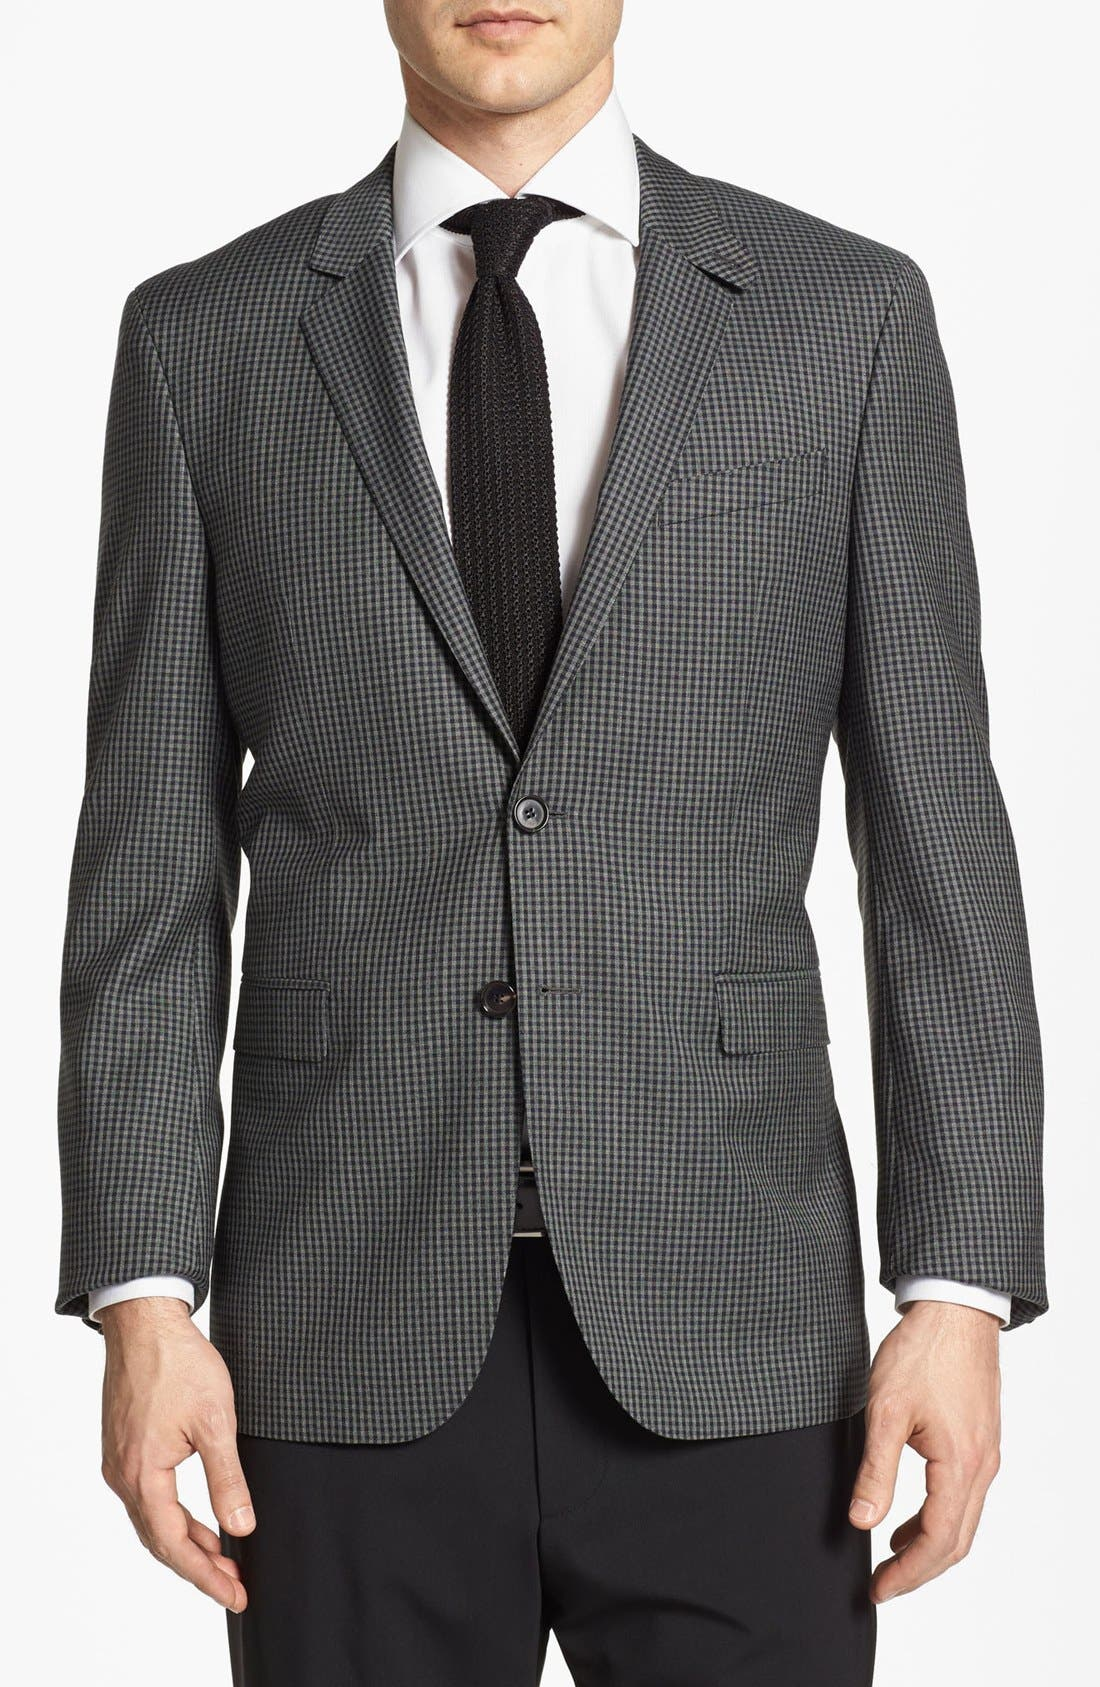 Alternate Image 1 Selected - BOSS HUGO BOSS 'Rhett' Extra Trim Fit Sportcoat